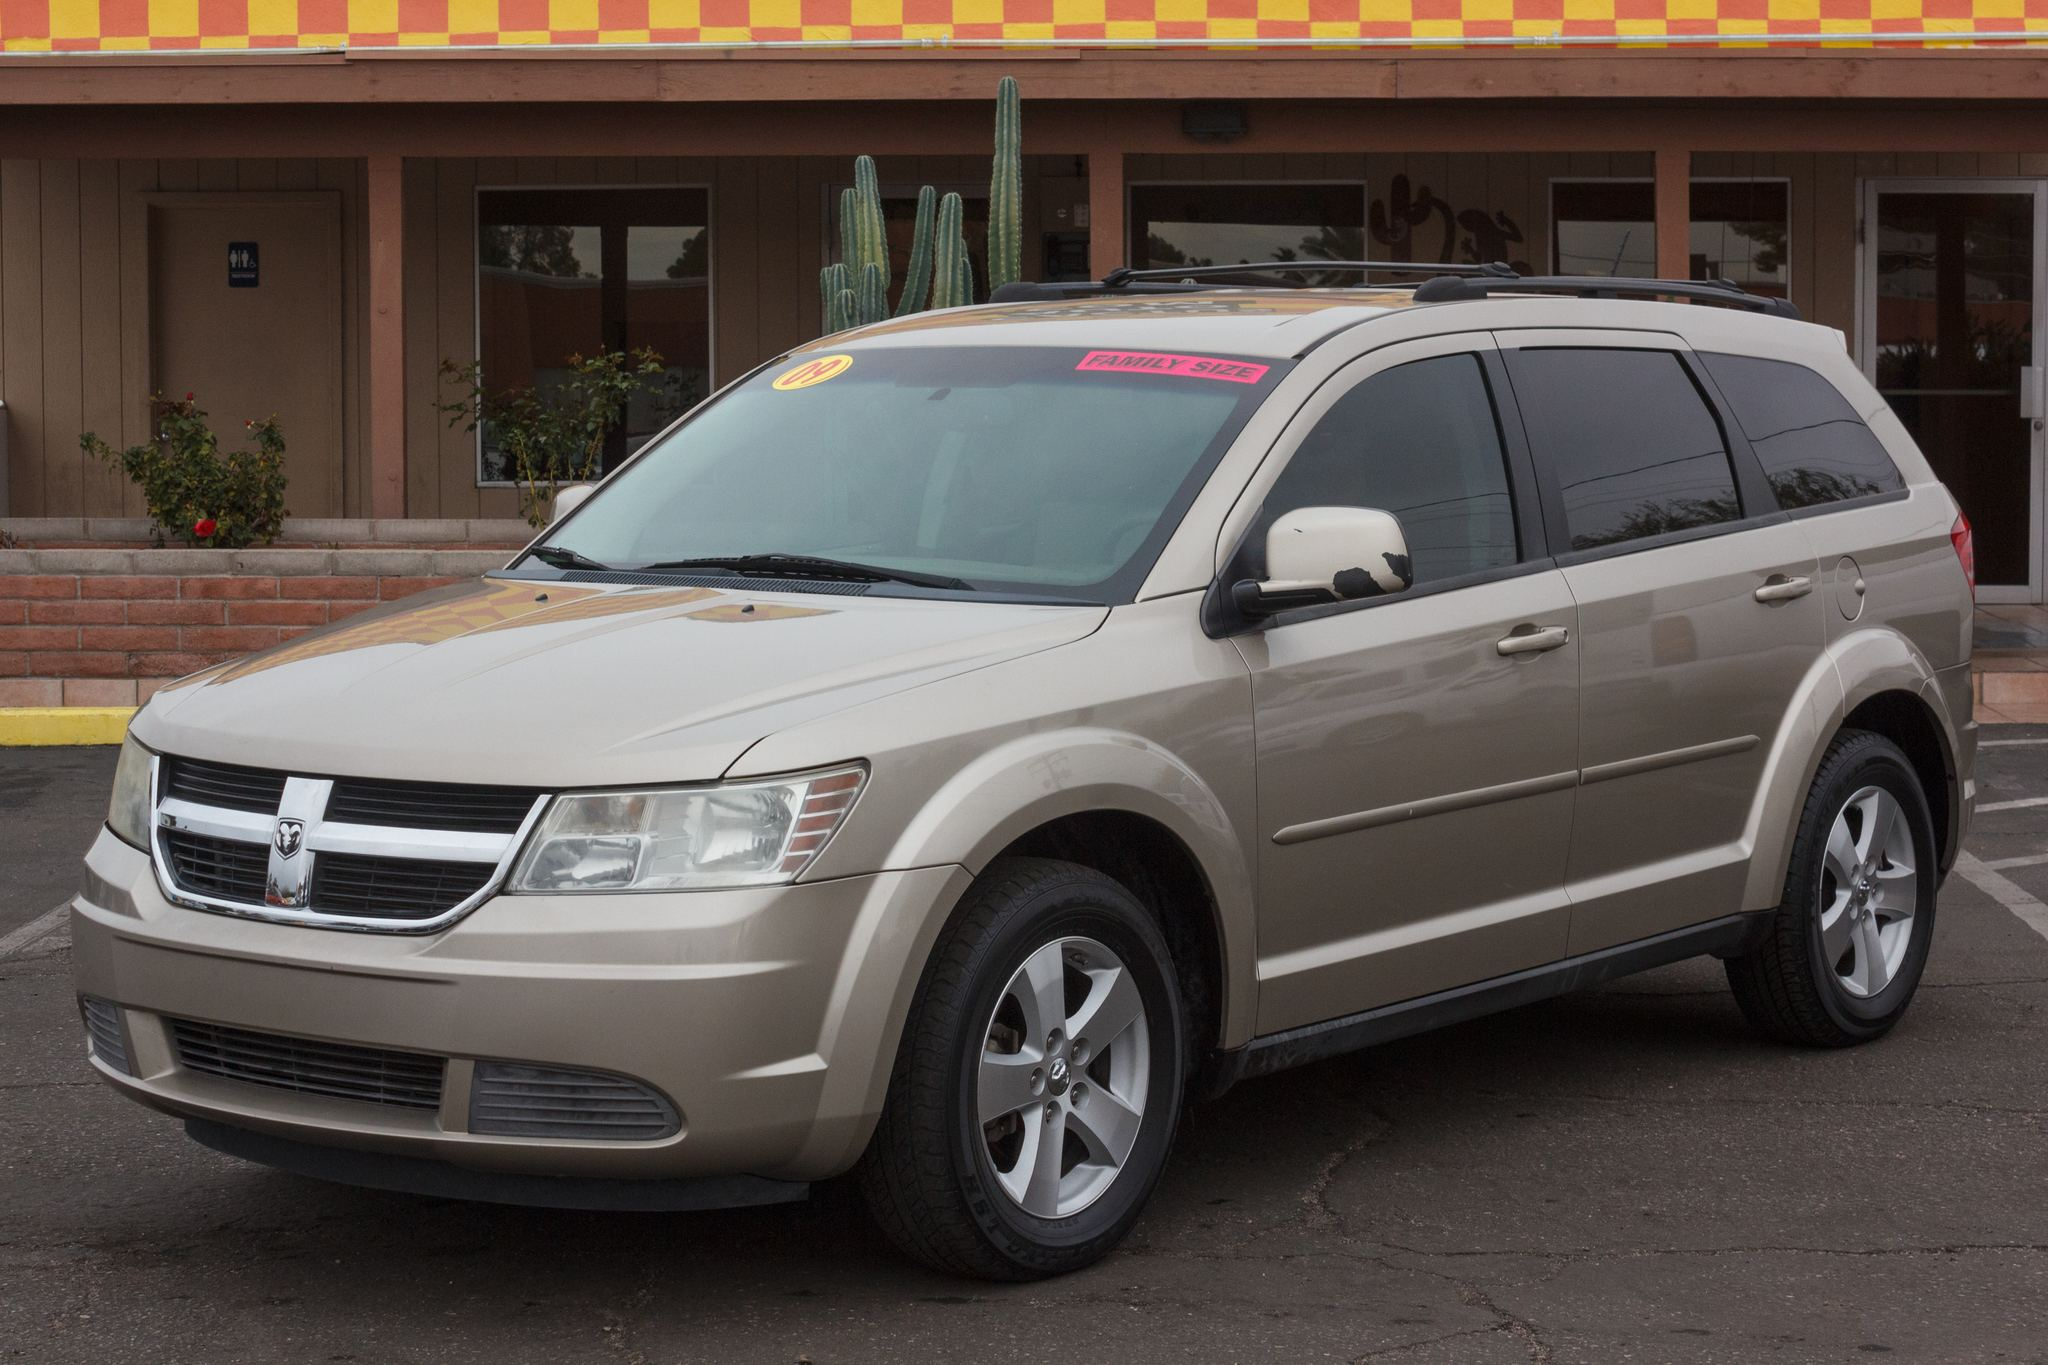 Photo of 2009 Dodge Journey FWD 4d Wagon SXT